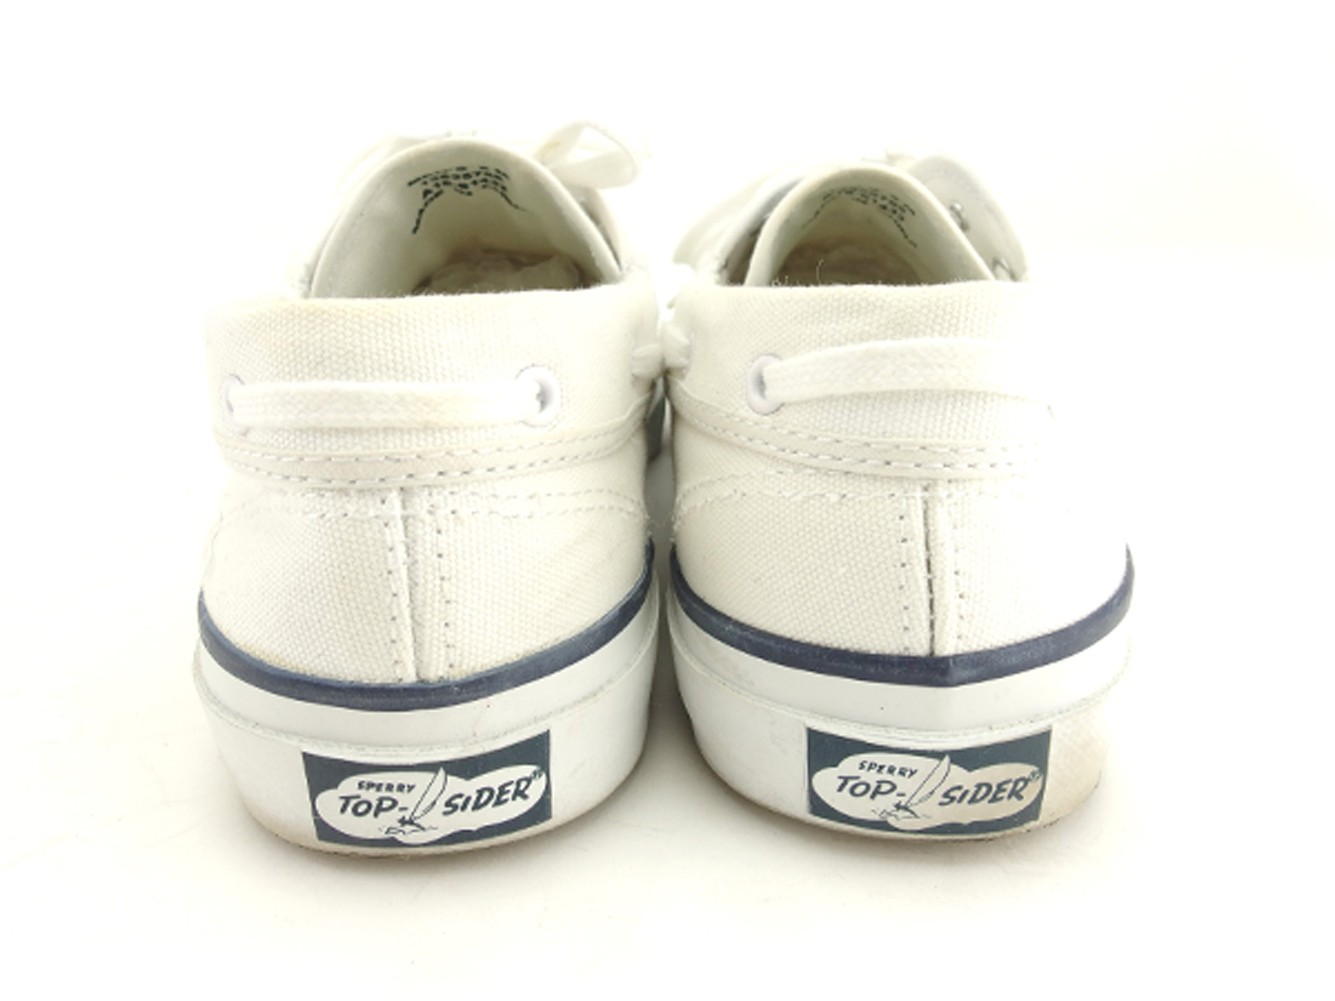 8af15b80a547 Sperry topsider Sperry Top-Sider sneakers shoes shoes men sea mate white  white navy canvas X rubber sneakers T7806s